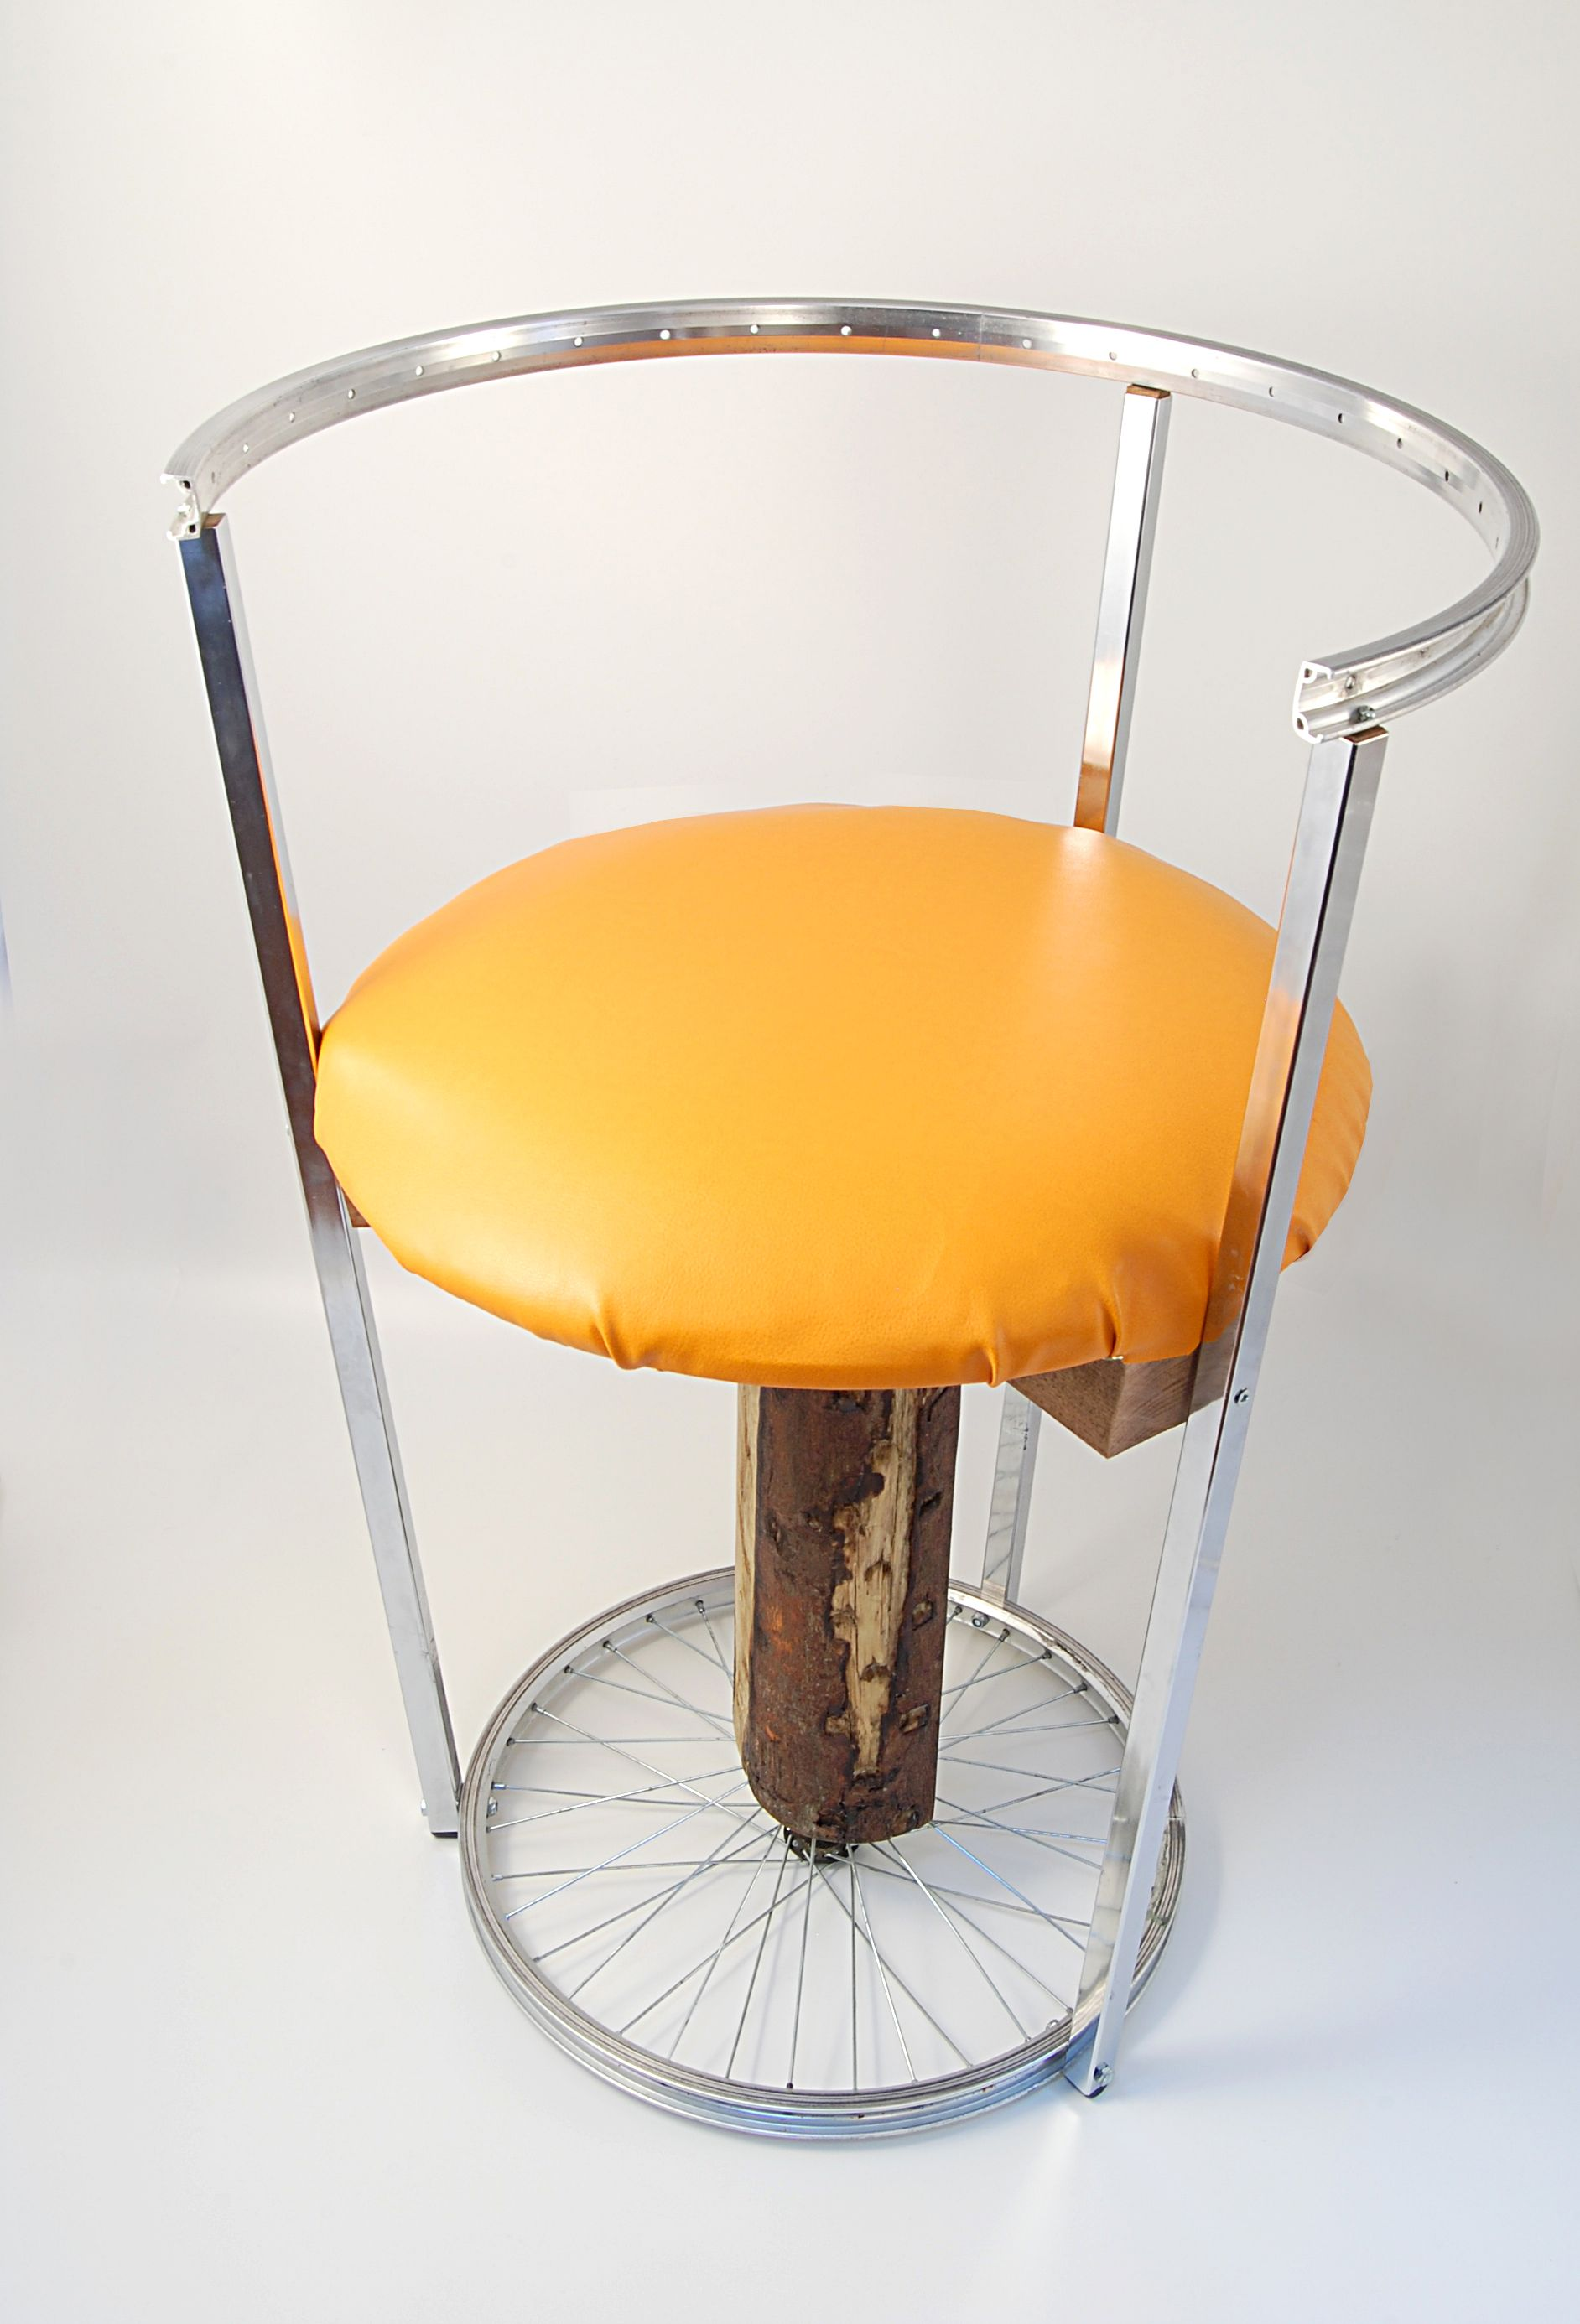 Bicycle Furniture Recycled Bike Chair Bicycle Furniture Pinterest Bikes And Chairs